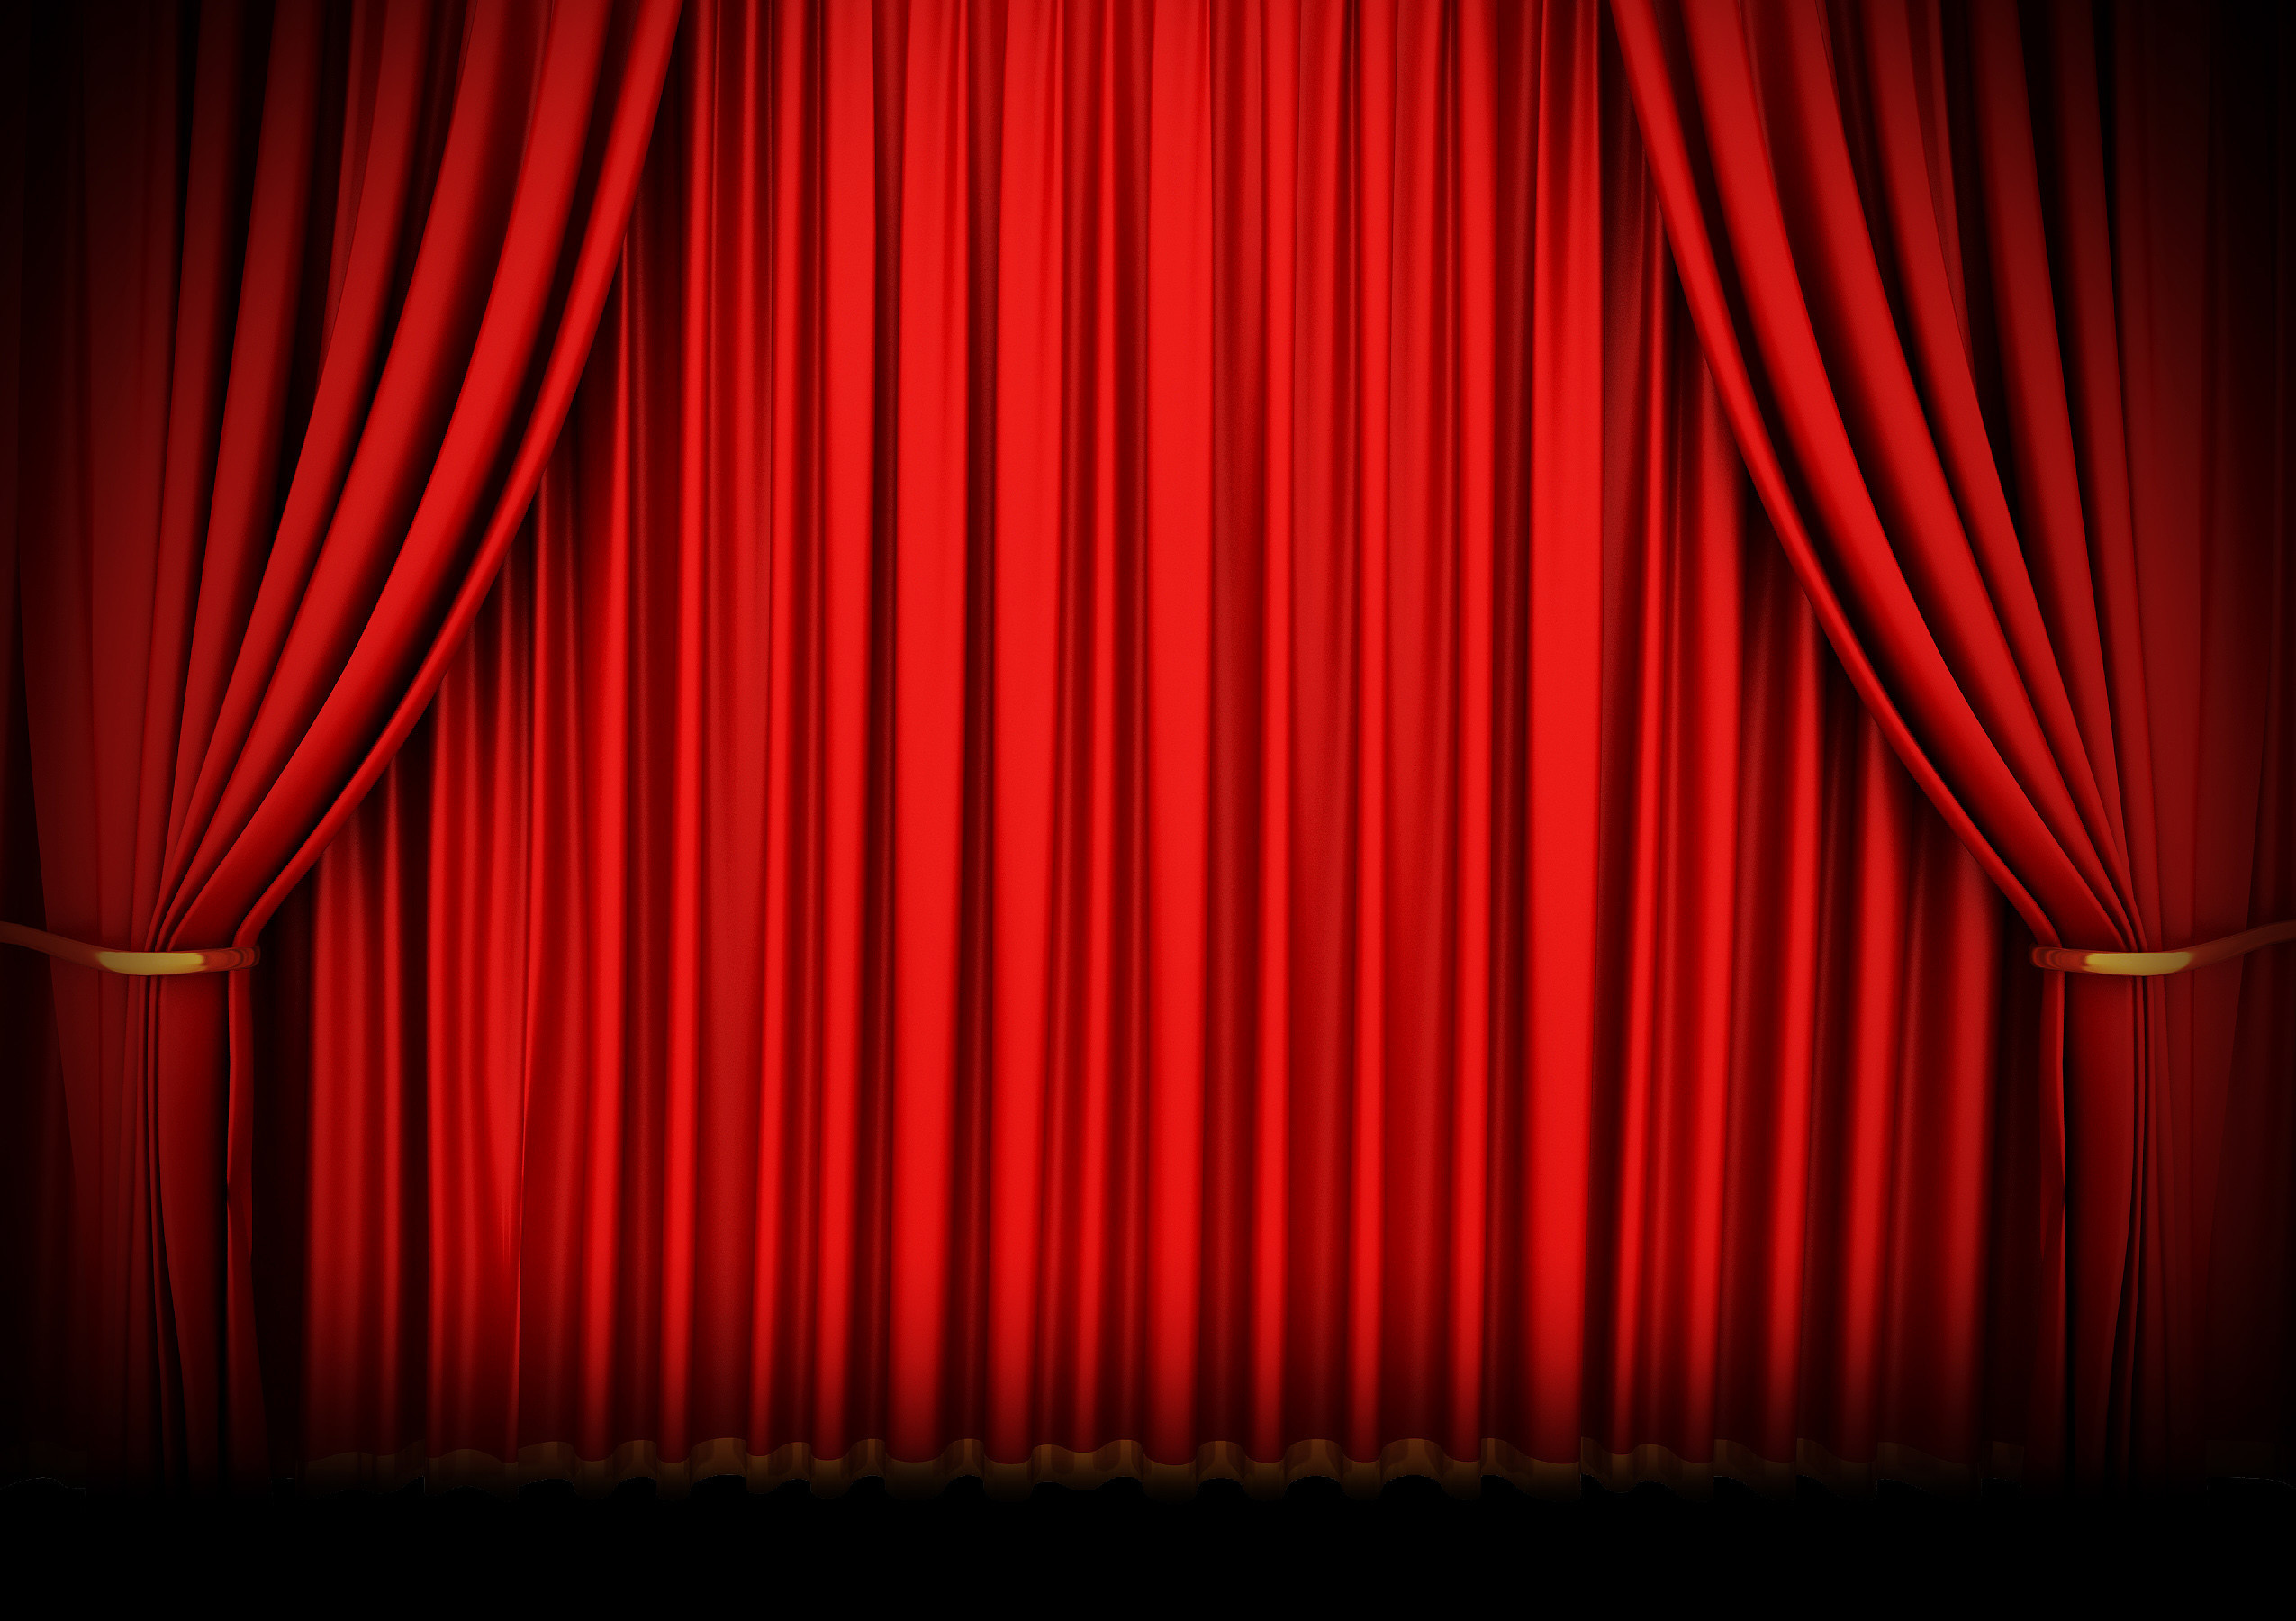 2550x1800 Red curtain background theatre stage psdgraphics - Related Pictures Red  Curtain Background Theatre